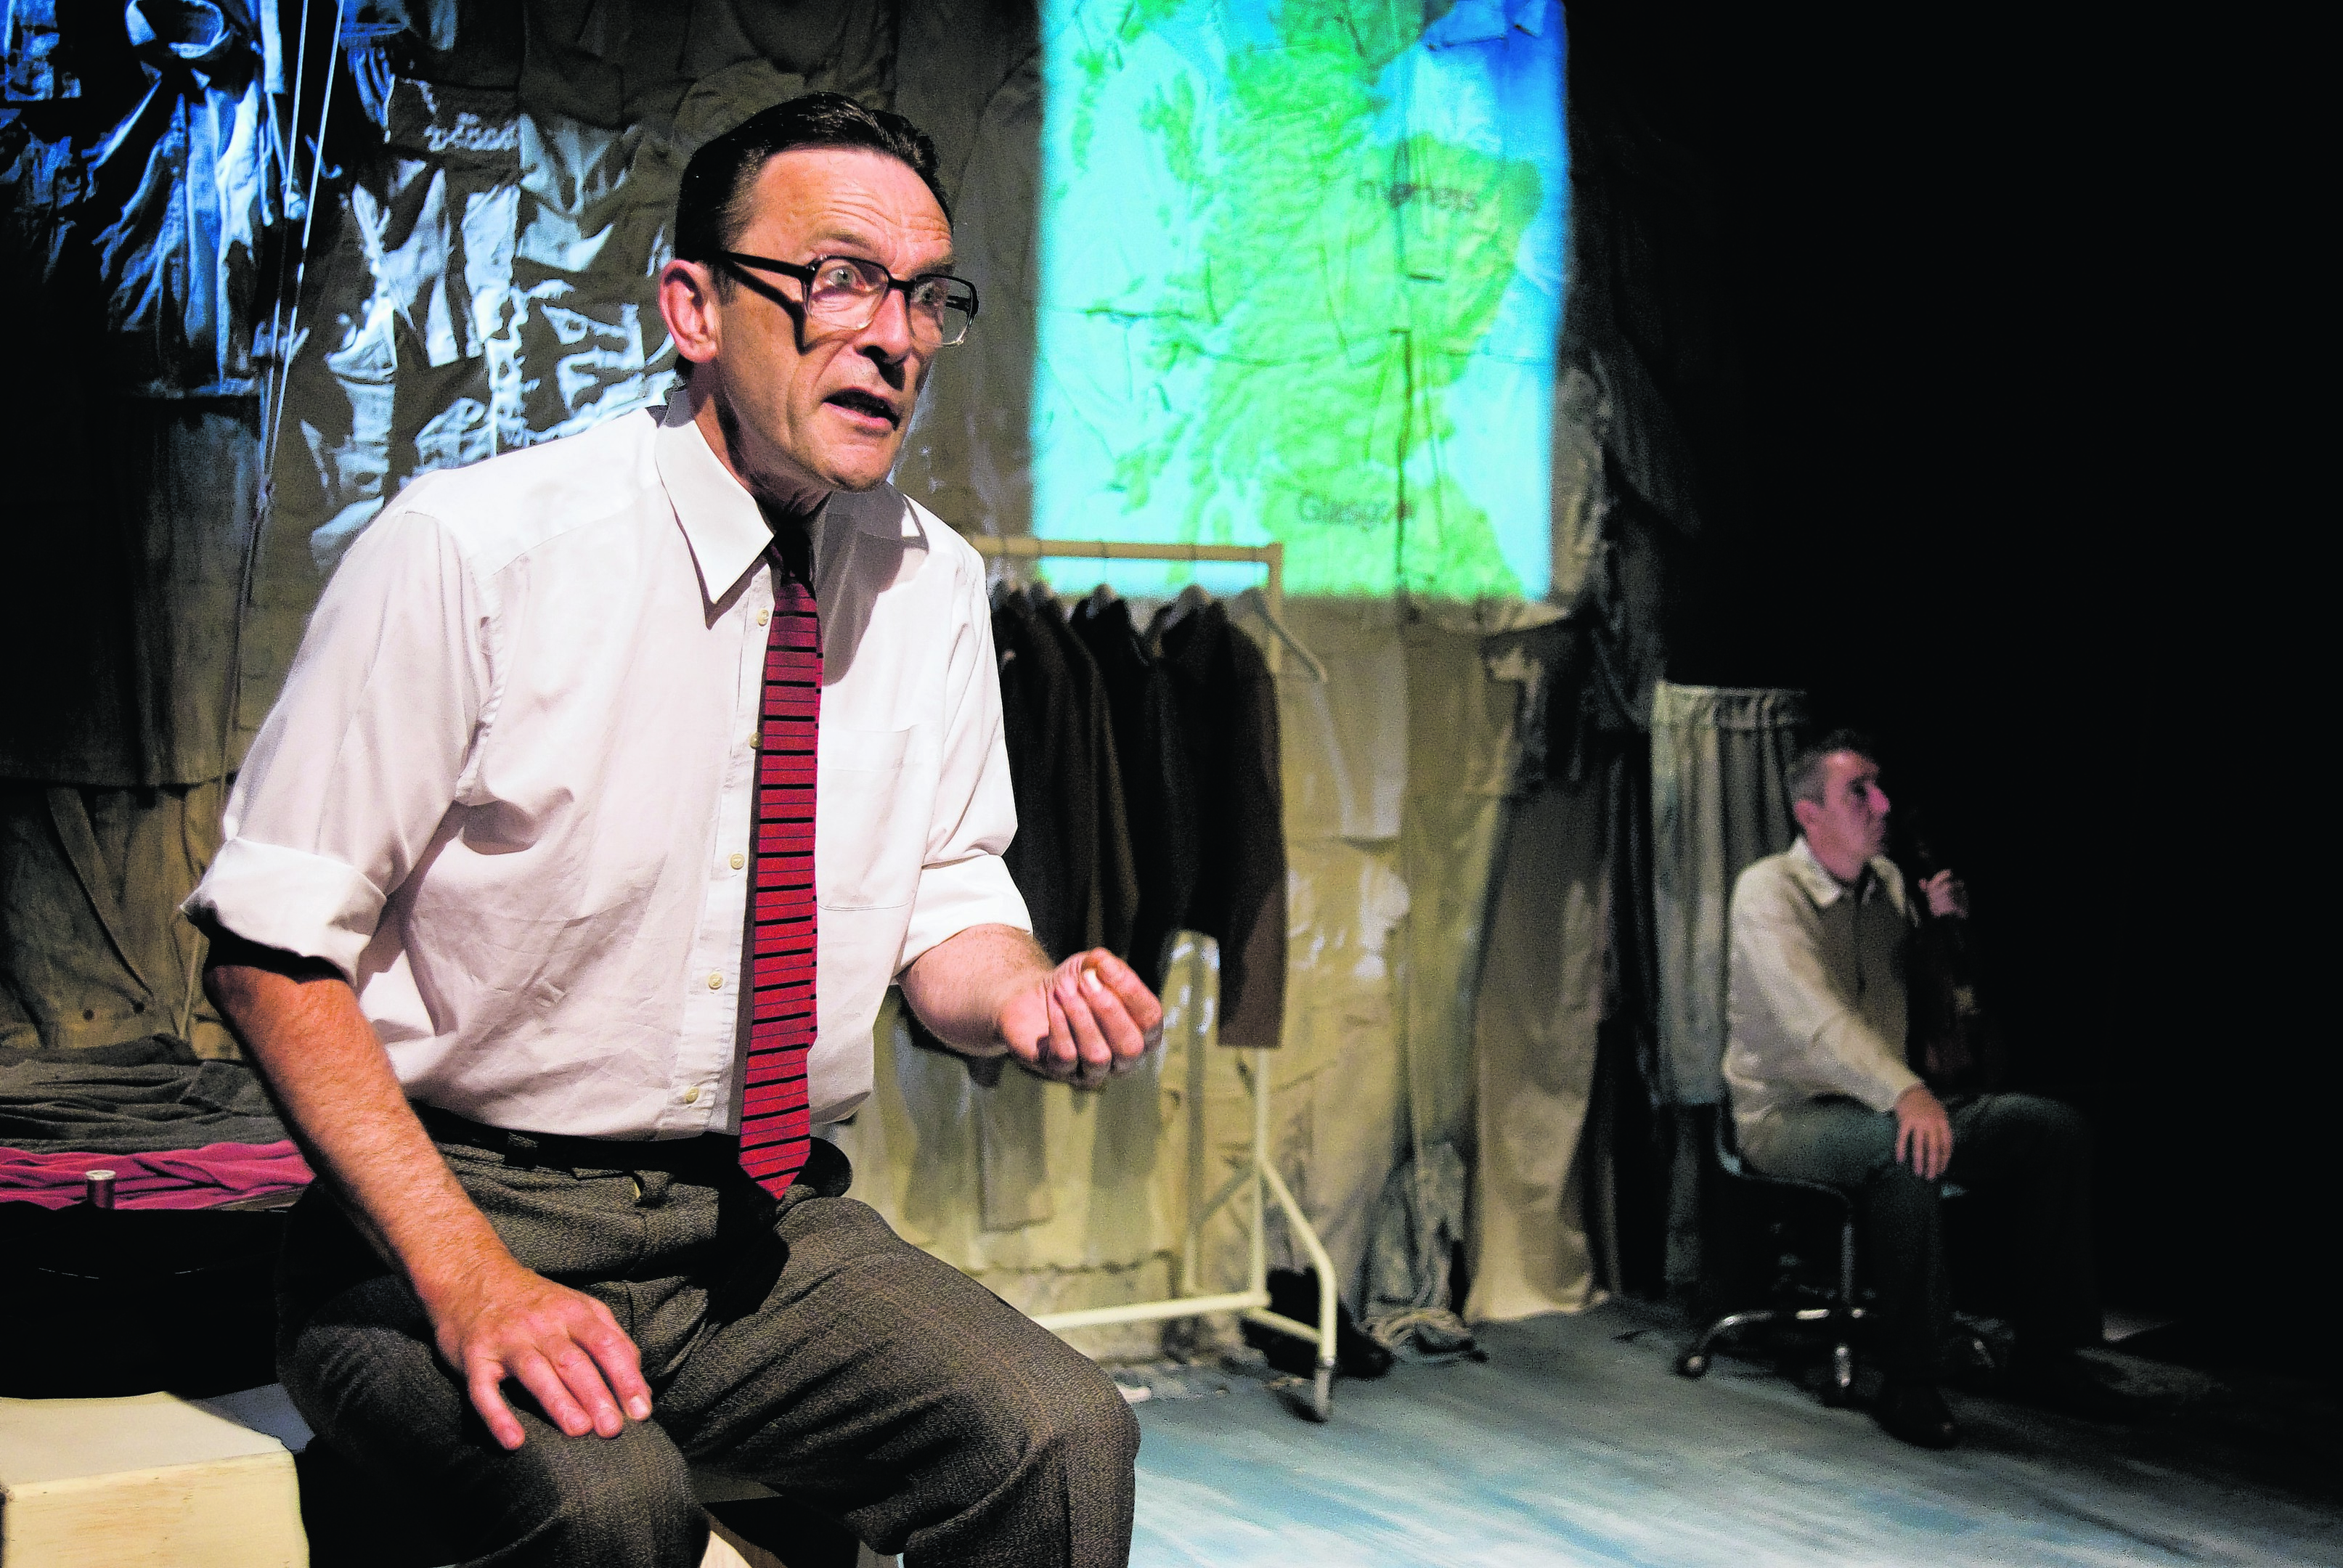 Matthew Zajac in The Tailor of Inverness, which is touring across the north and north-east of Scotland now